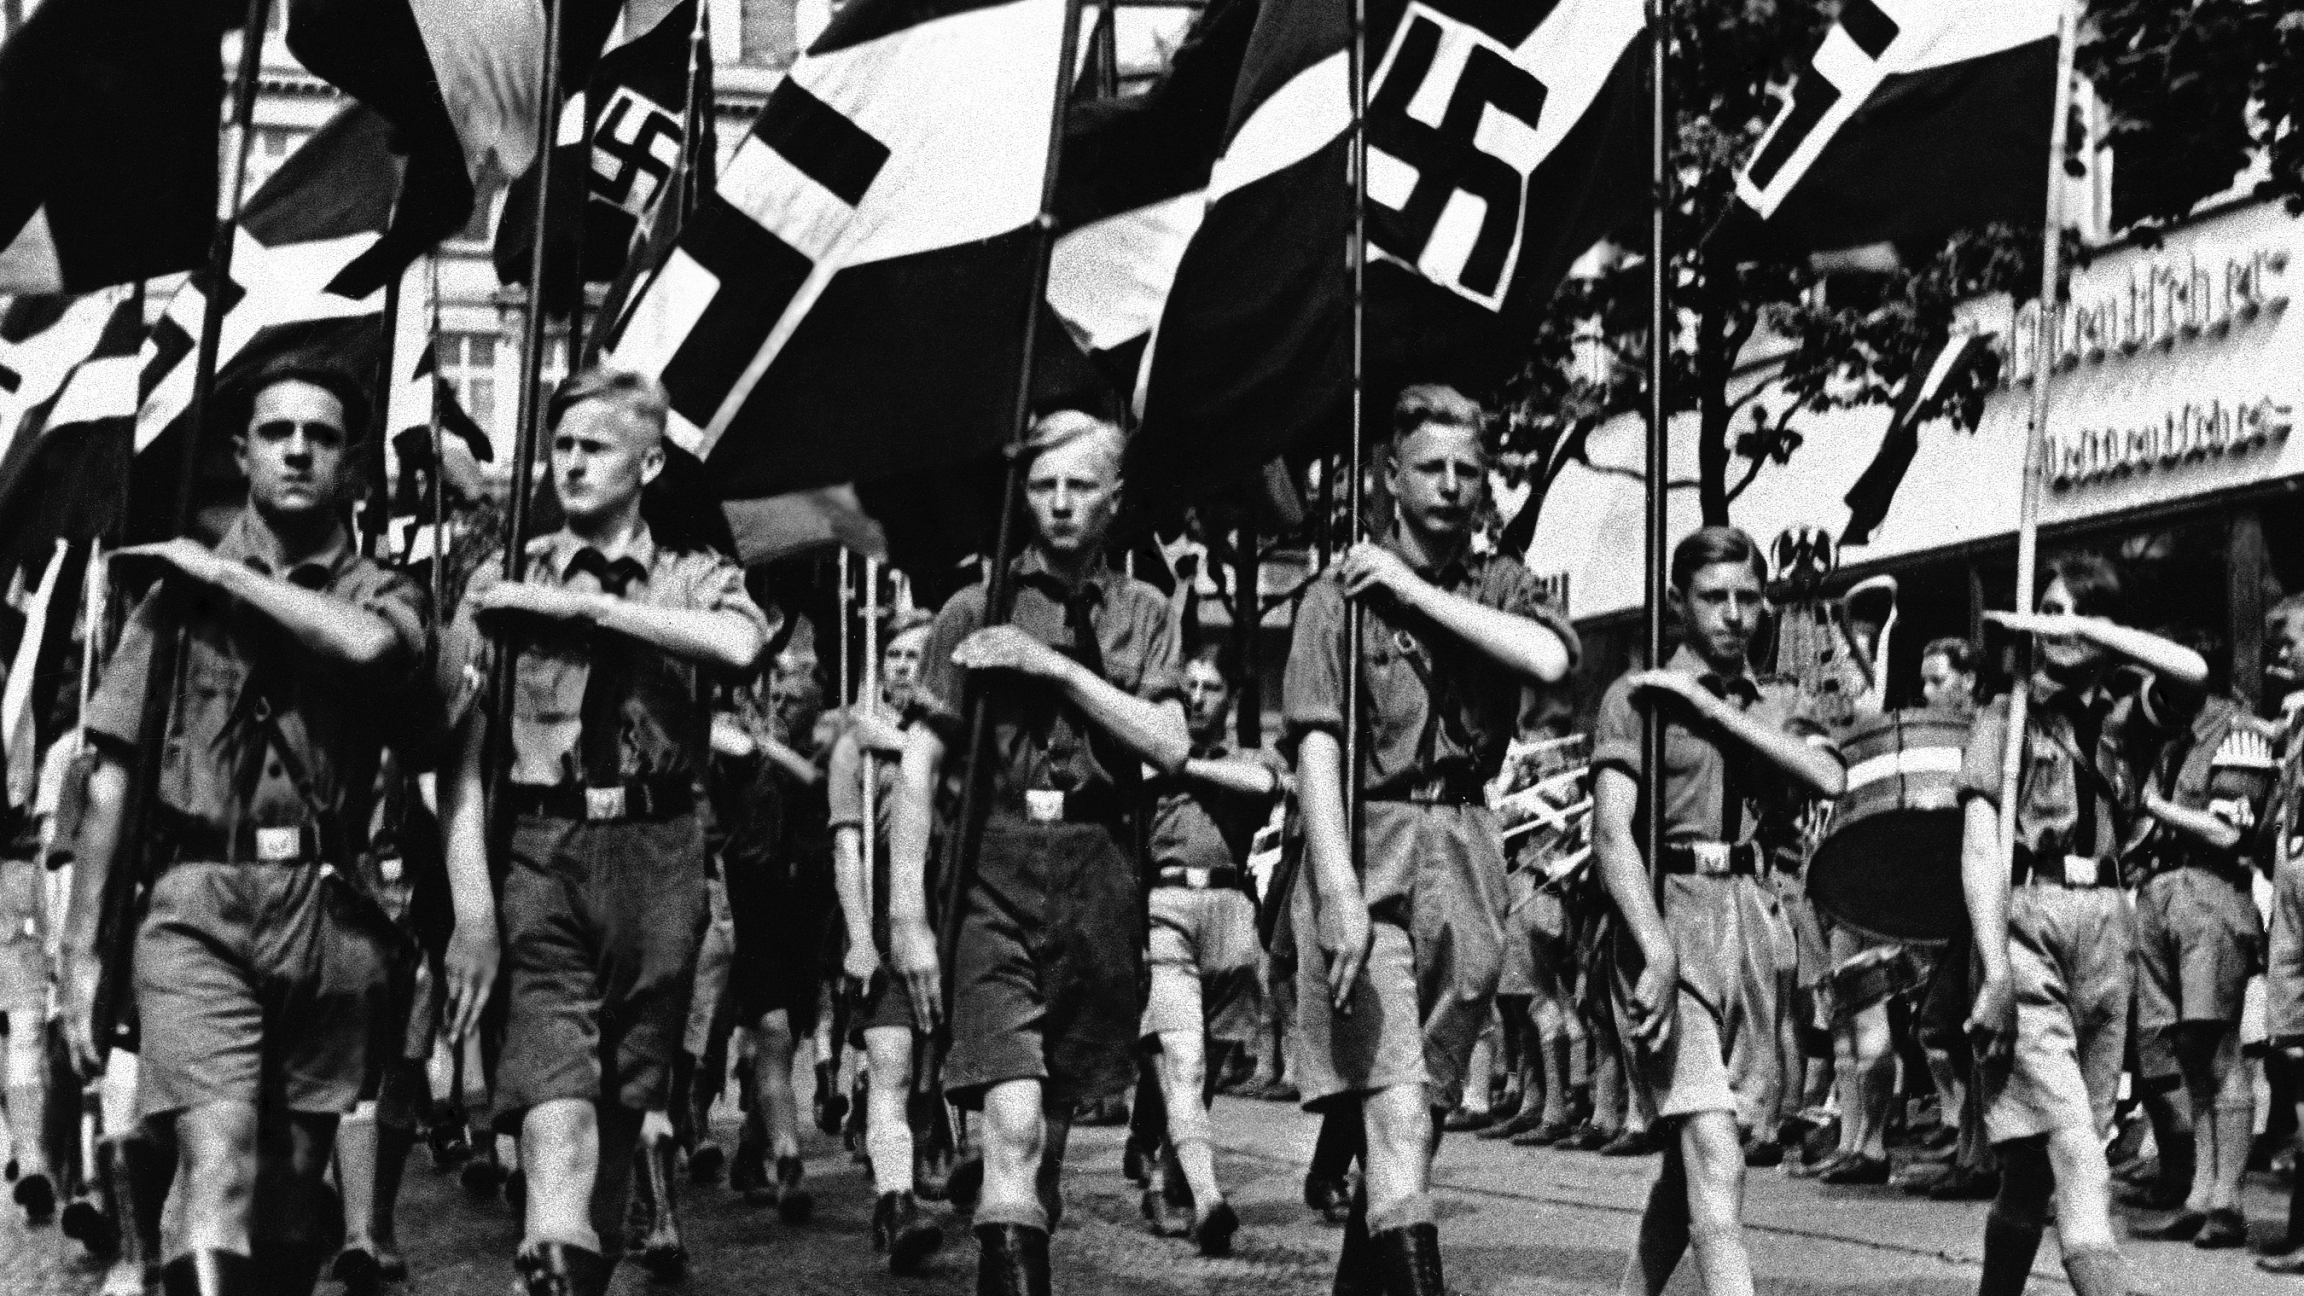 Adolf Hitler's Nazi campaign includes the indoctrination of children in Berlin, Feb. 24, 1936. The boys are trained for future military service and the girls to be obedient hausfraus. Here a group of boys proudly march beneath Nazi standards.